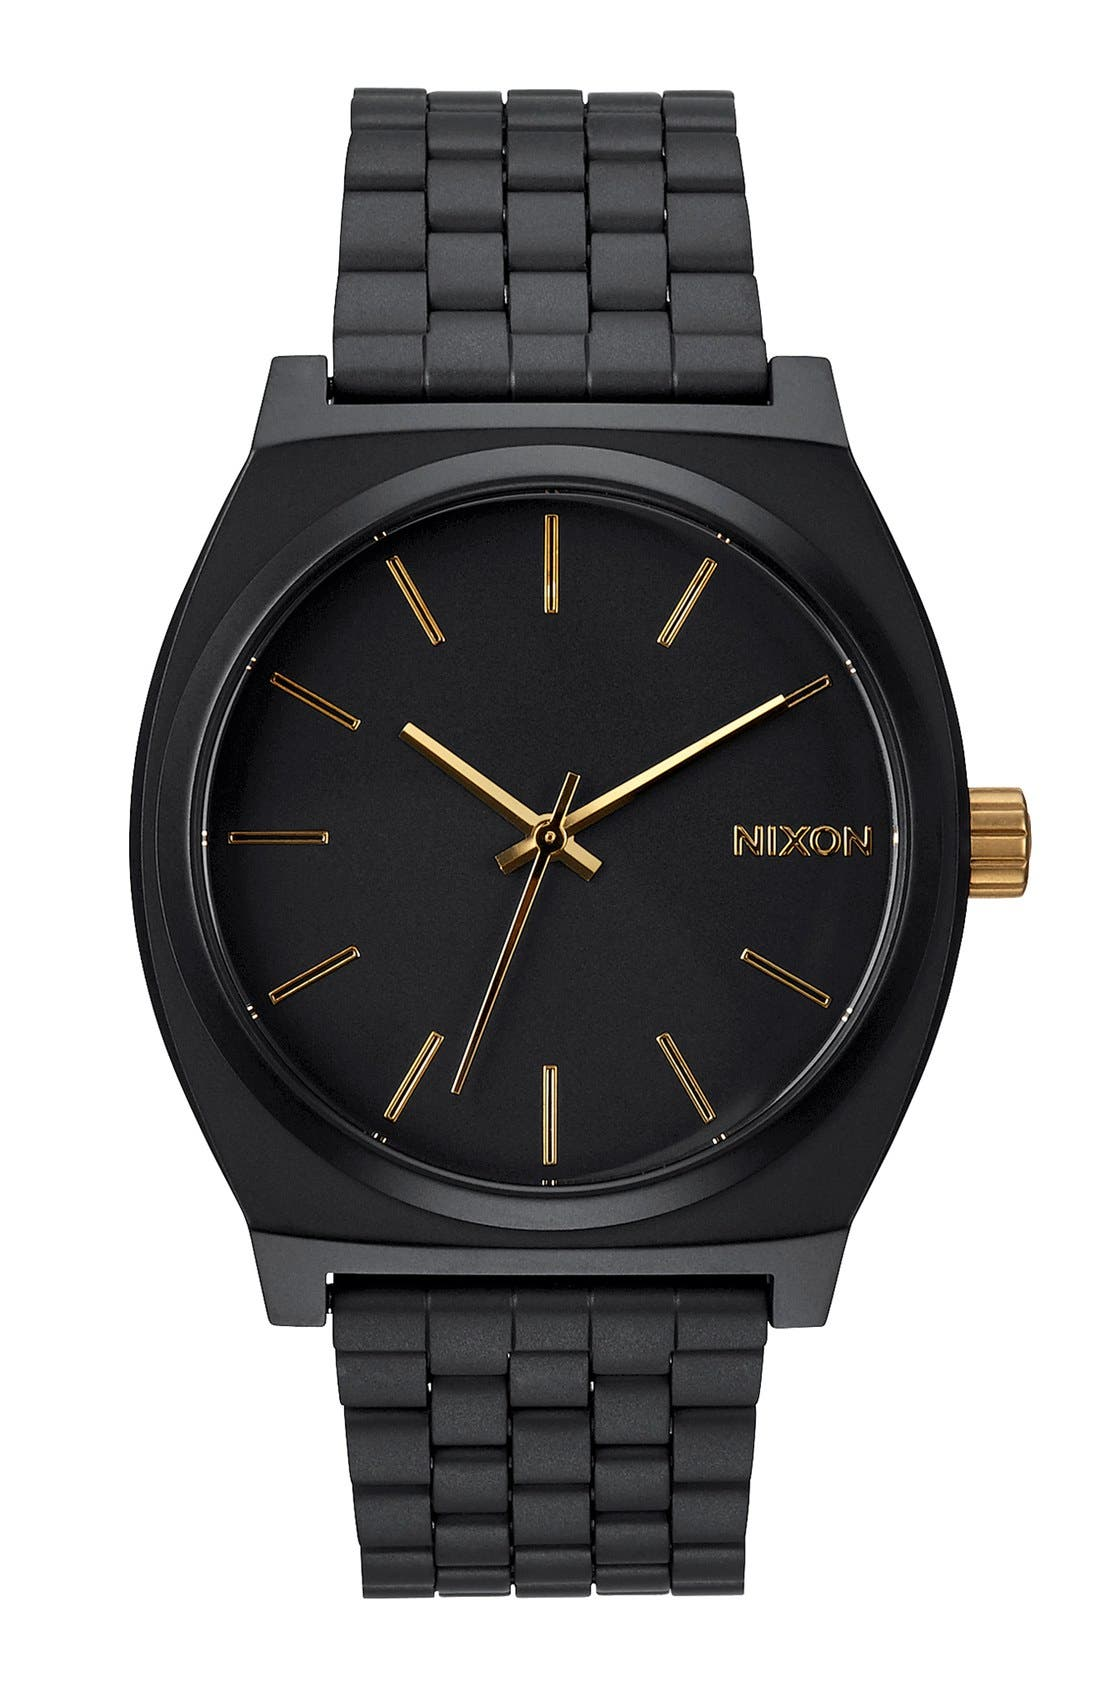 Nixon Watches 'THE TIME TELLER' STAINLESS STEEL BRACELET WATCH, 37MM